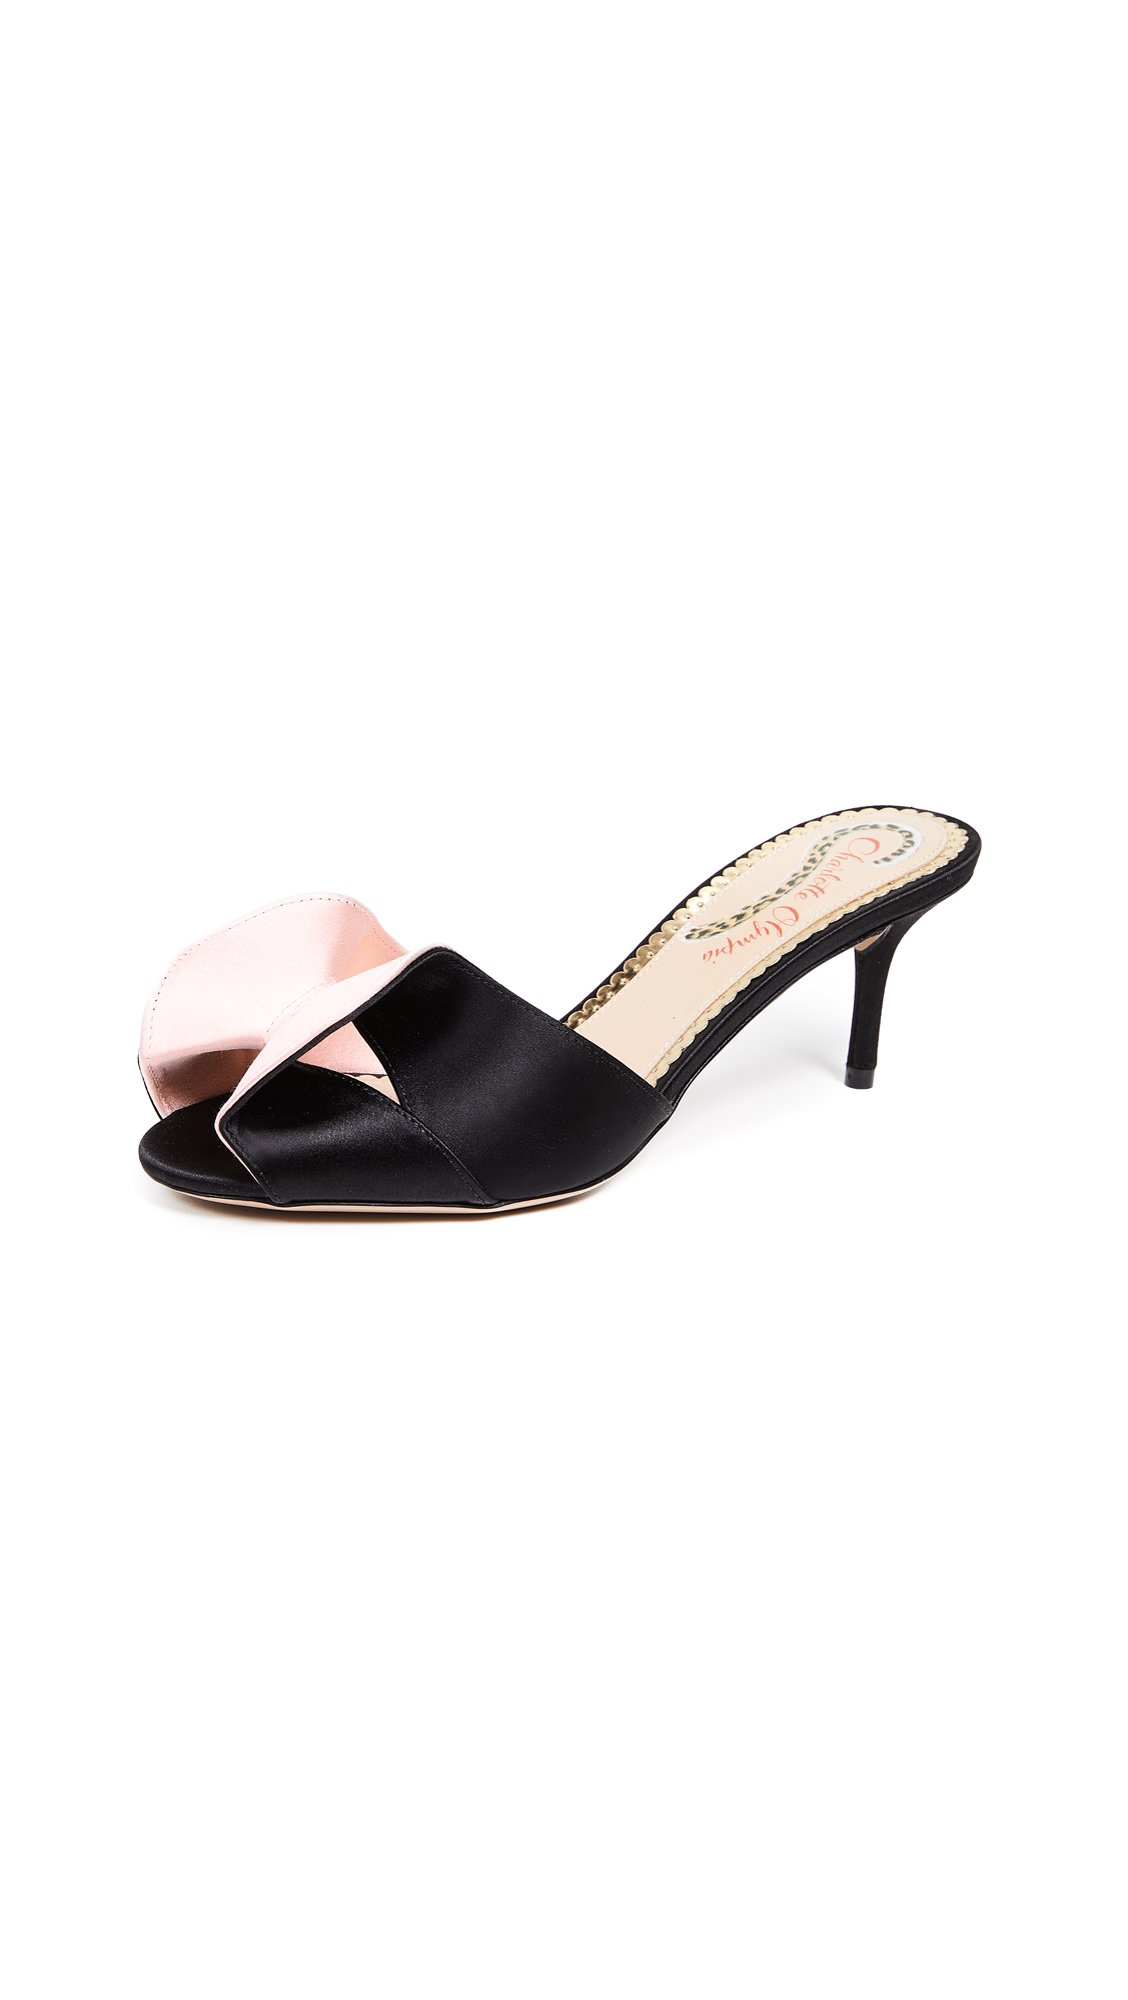 Vintage Mules in Black/Pale Pink